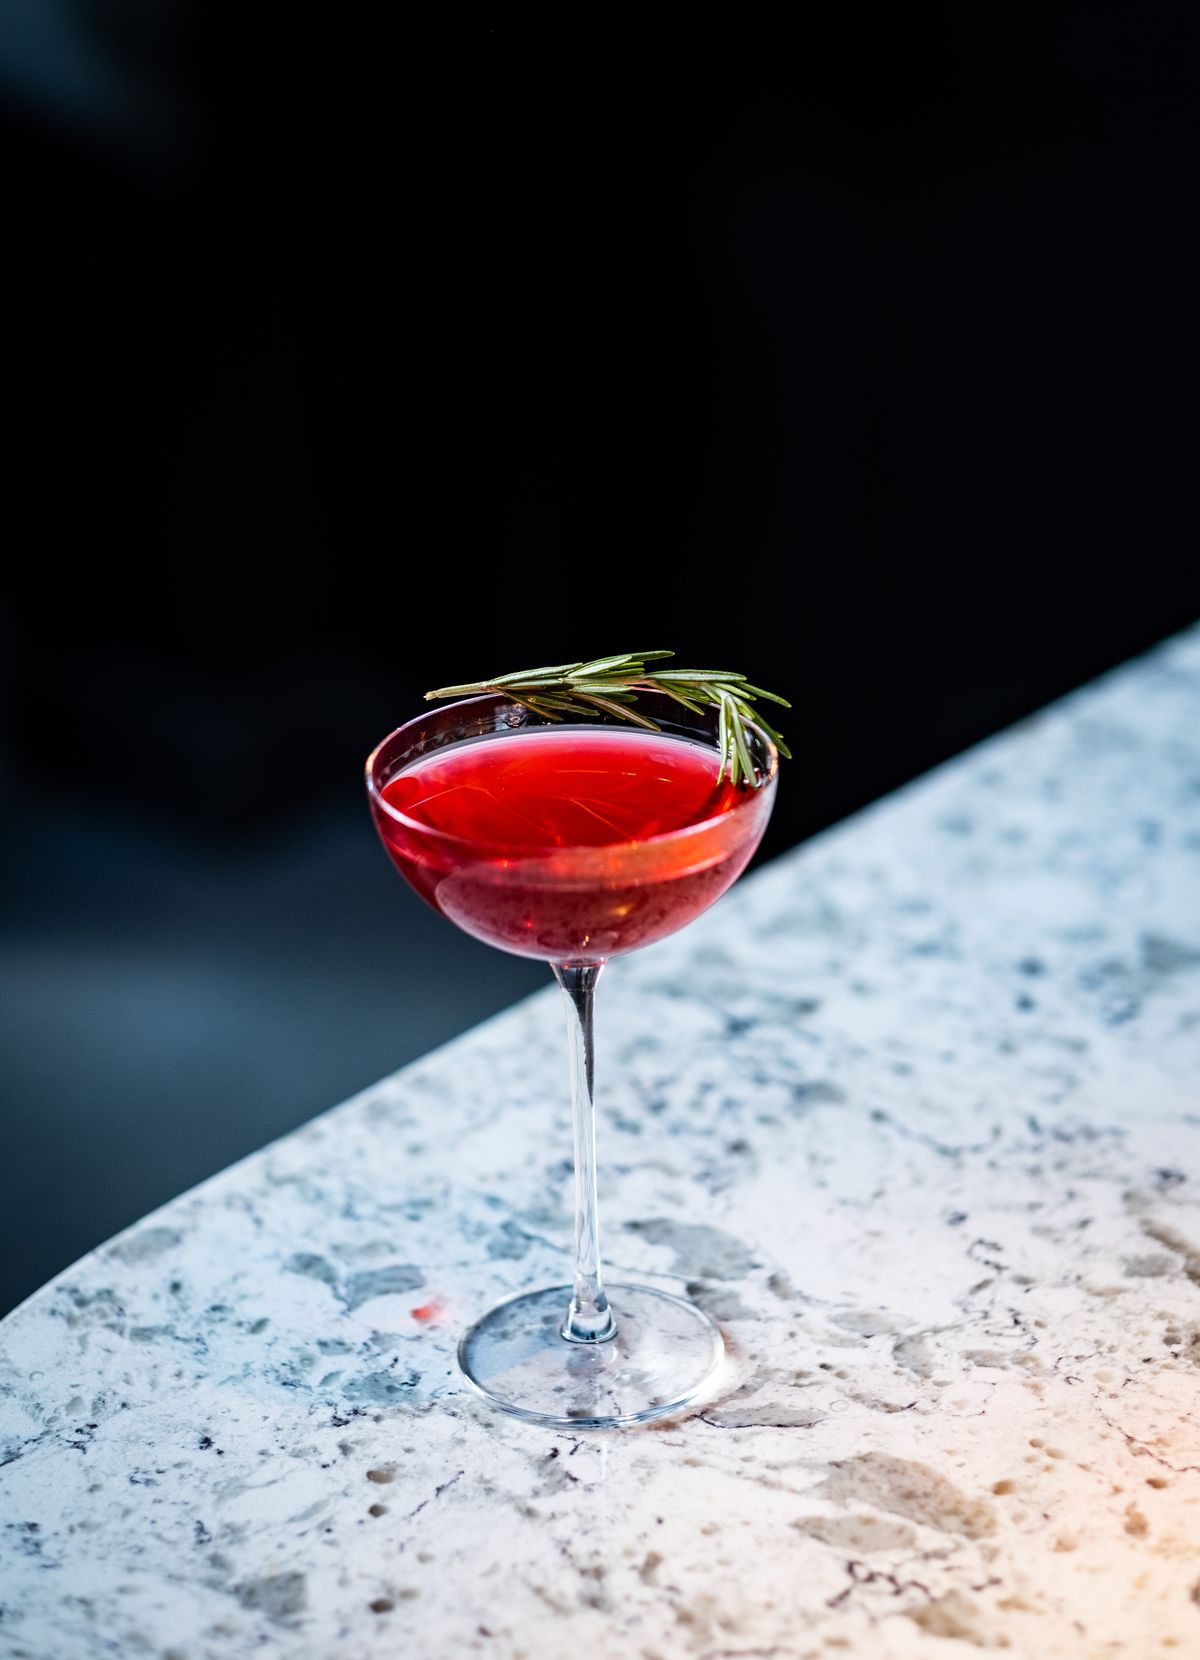 An red cocktail with a sprig of rosemary is served on a marble bar top with a deep blue curtain in the background